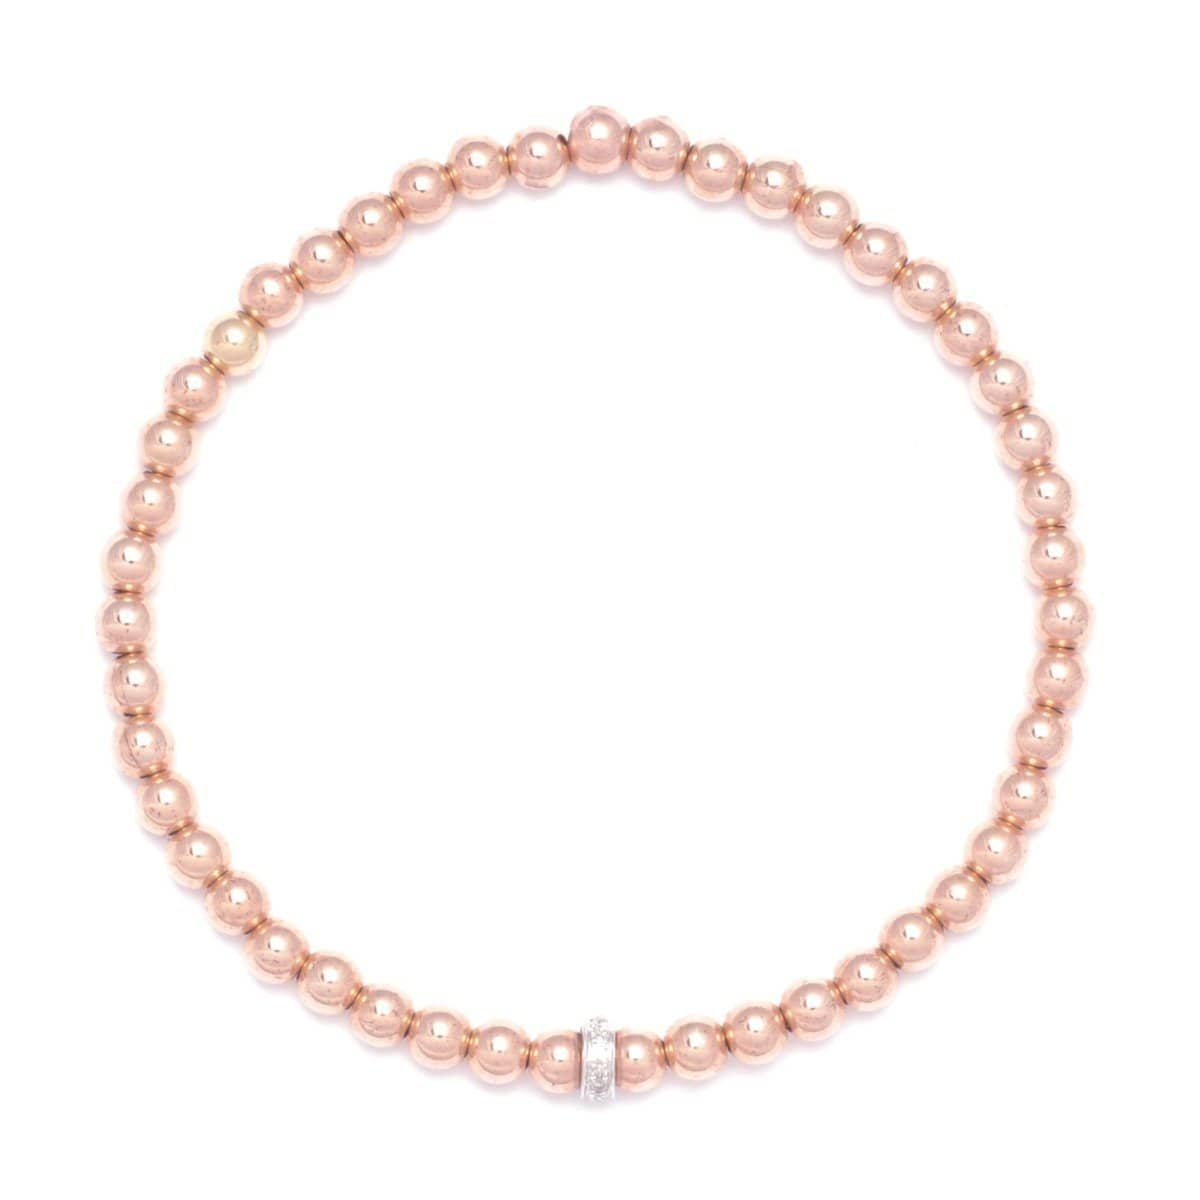 4mm Diamond Bead Rose Gold Bead Bracelet